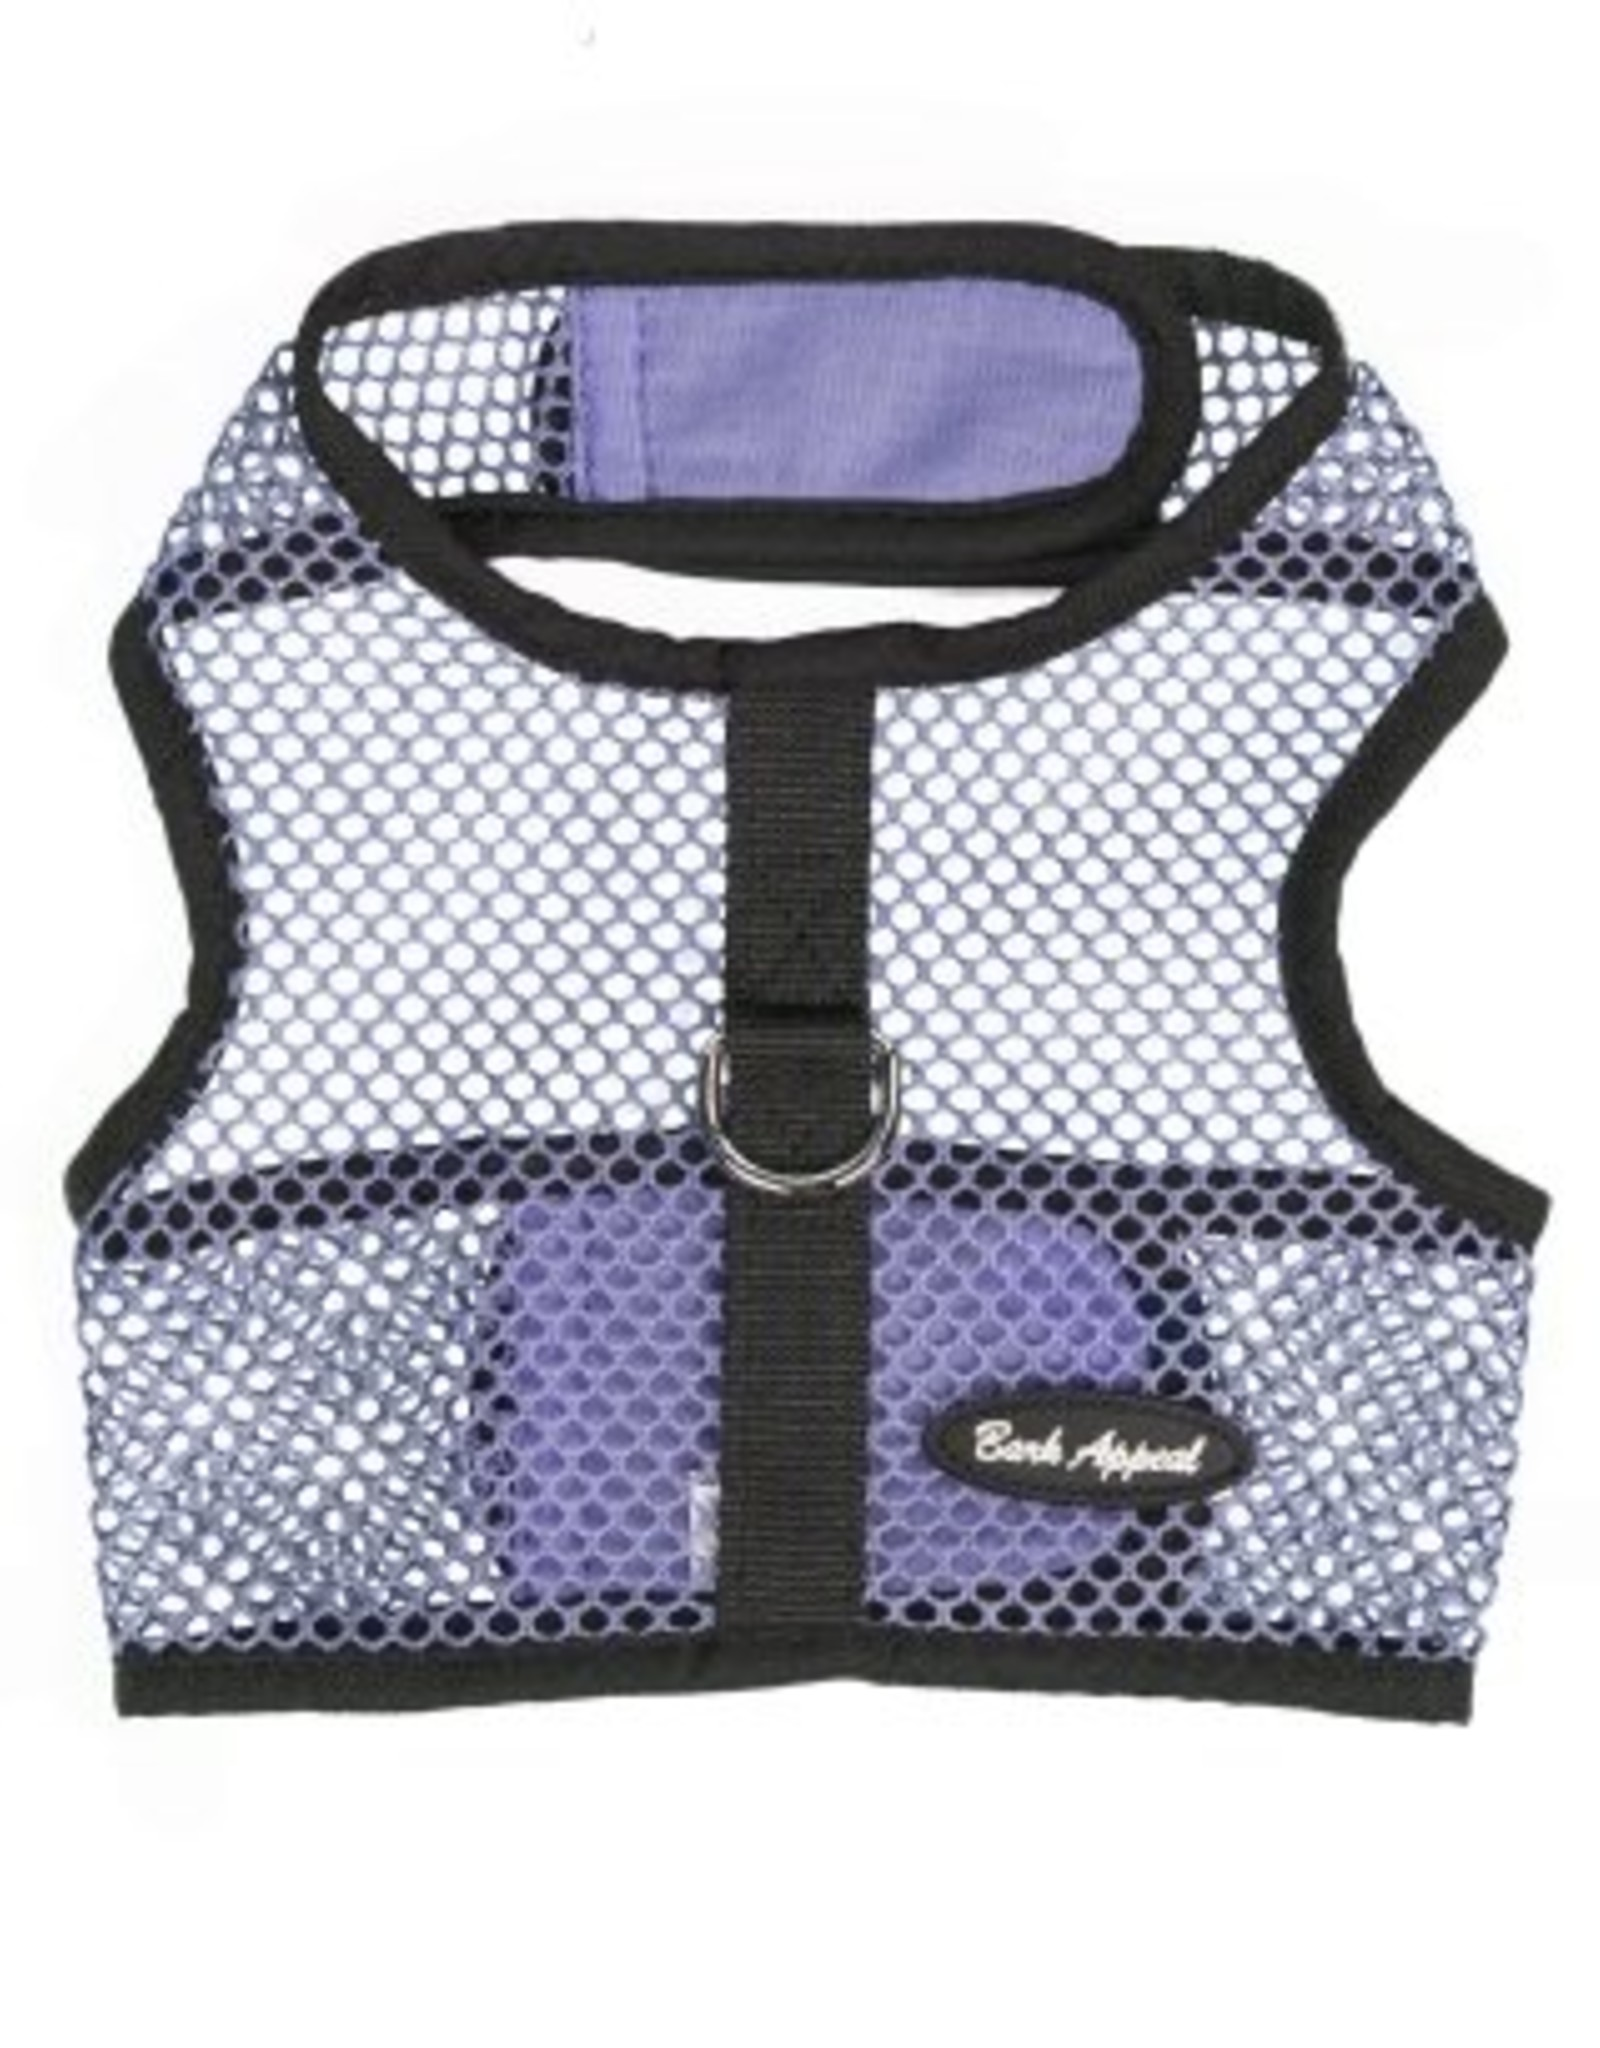 Bark Appeal Bark Appeal Wrap N Go Netted Harness